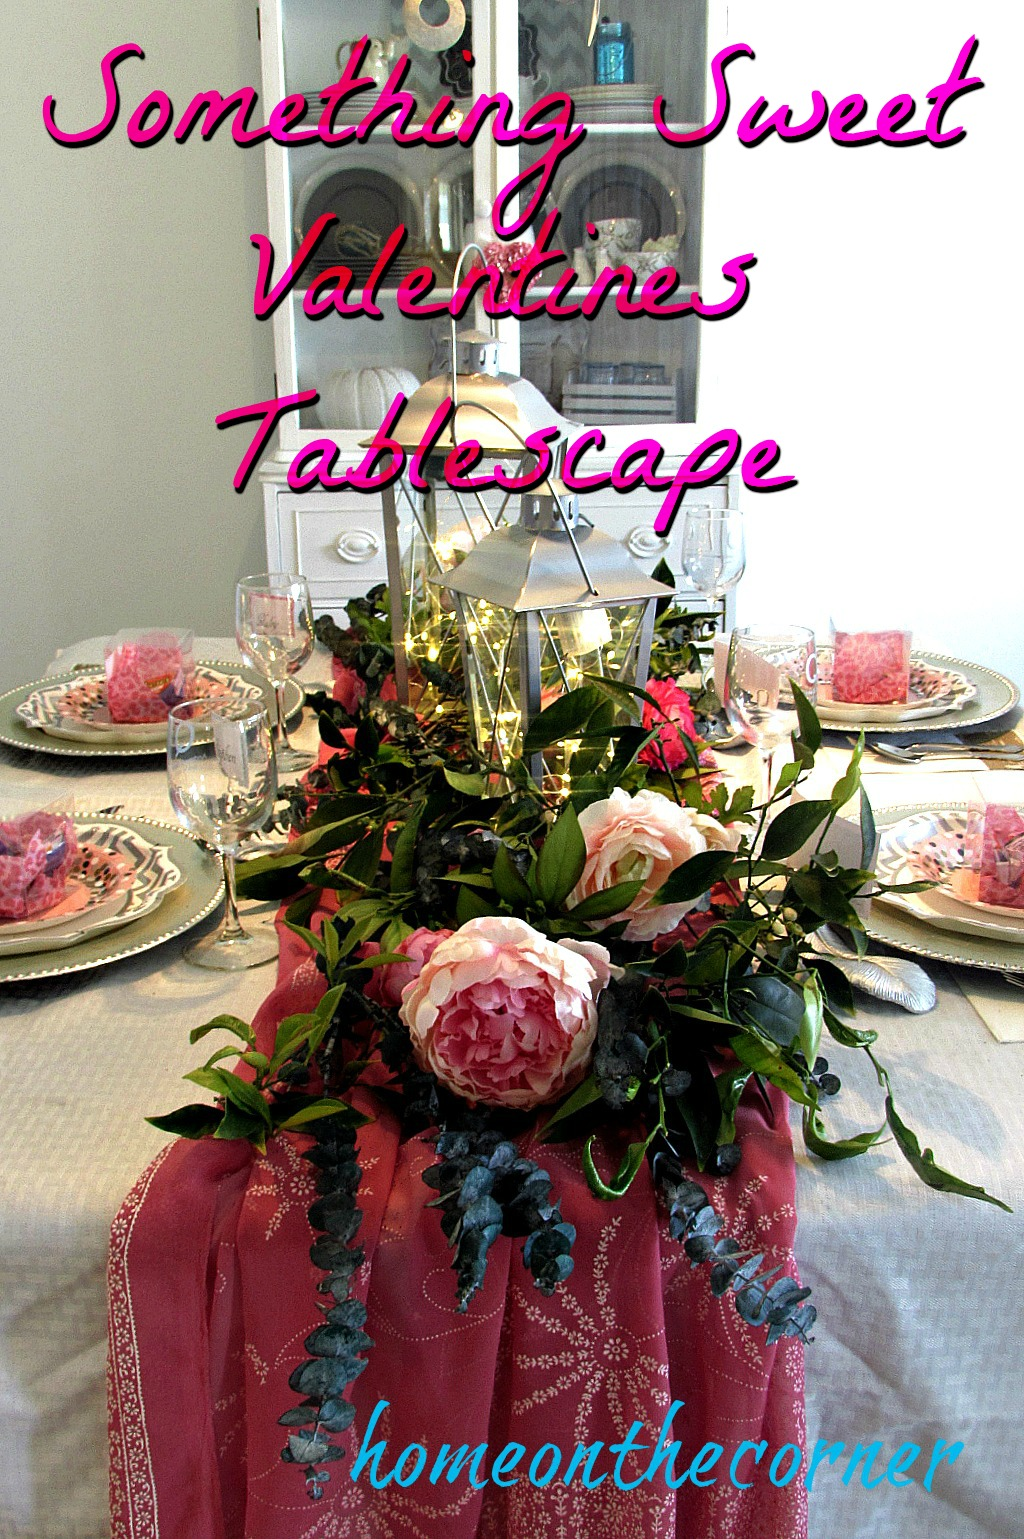 something-sweet-valentines-tablescape-and-hutch-title